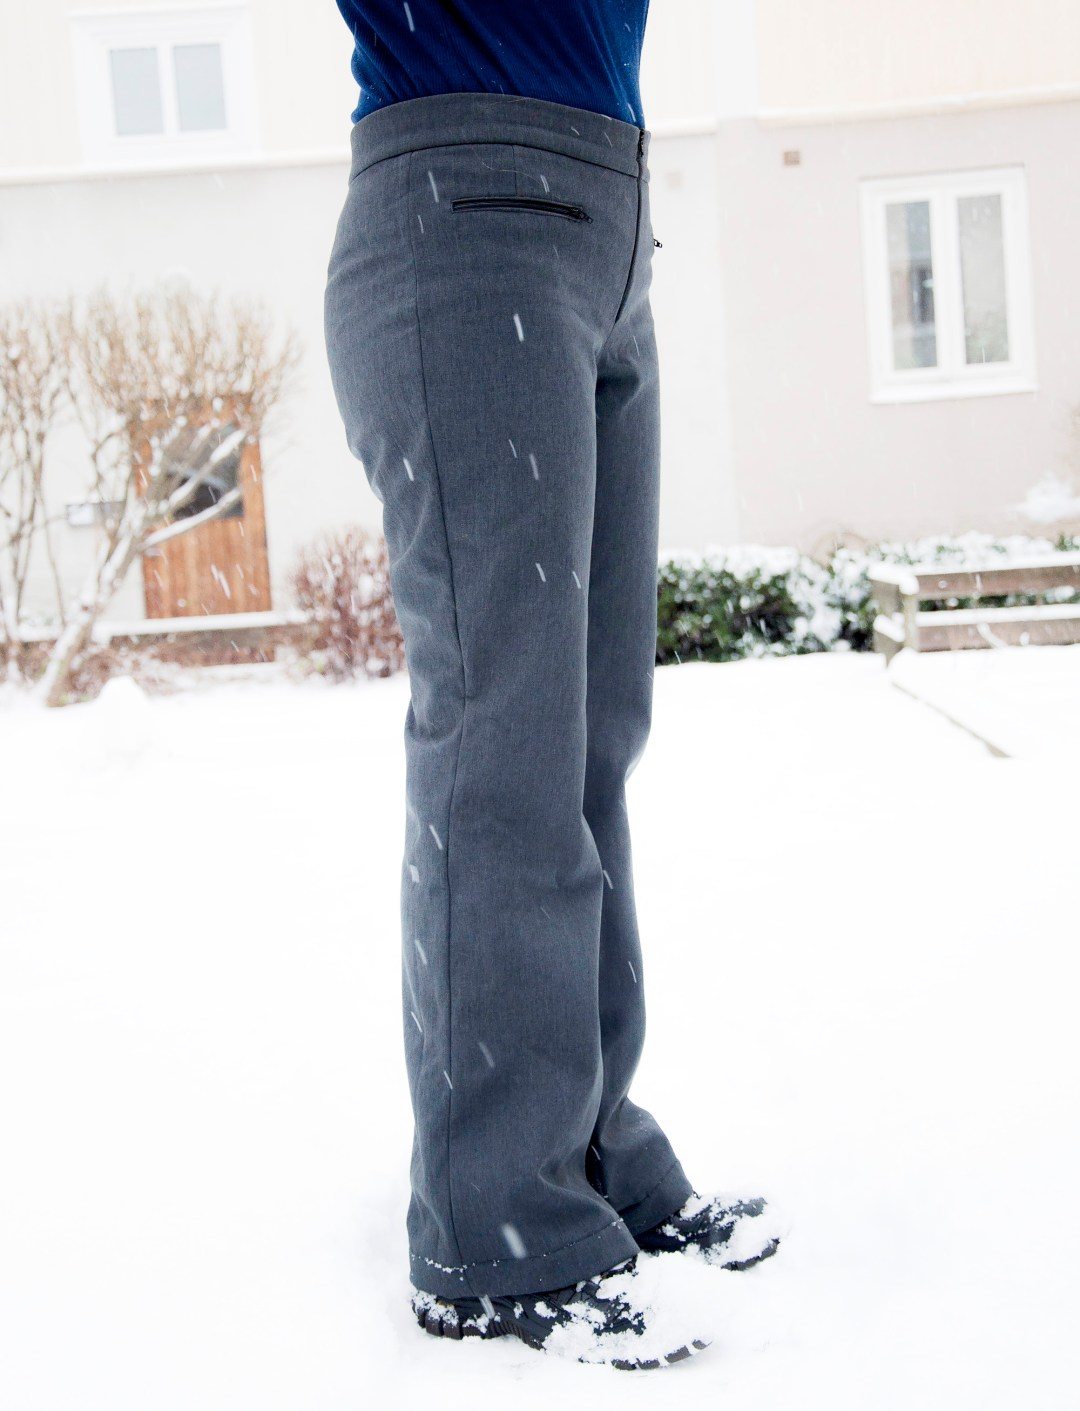 Burdastyle ski pants